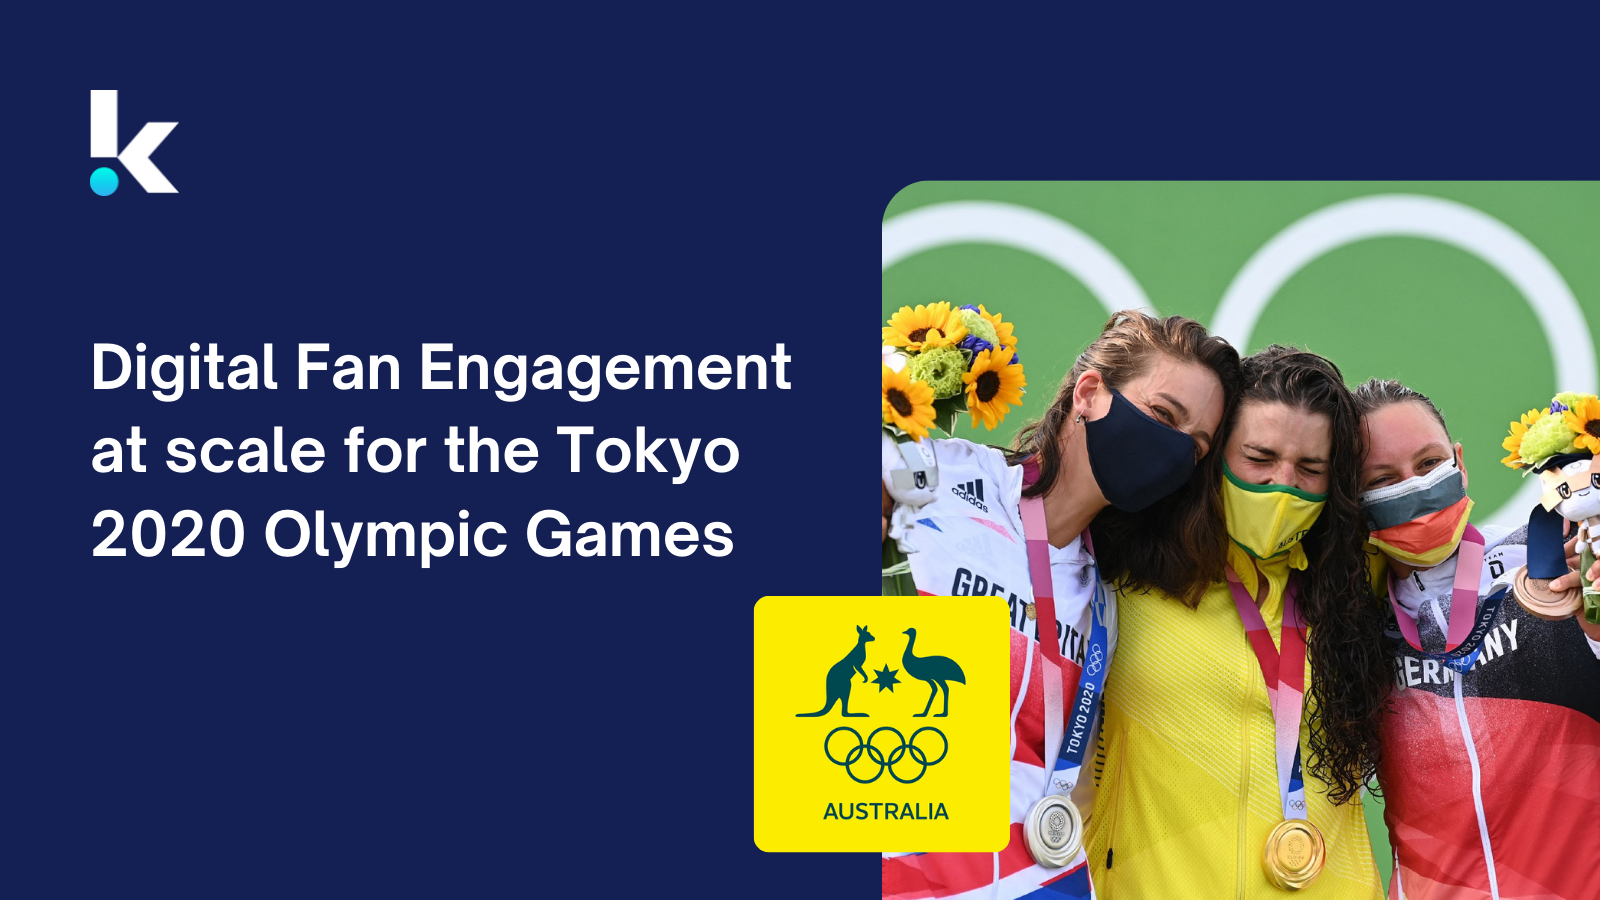 Digital Fan Engagement at scale for the Tokyo 2020 Olympic Games - Josh copy